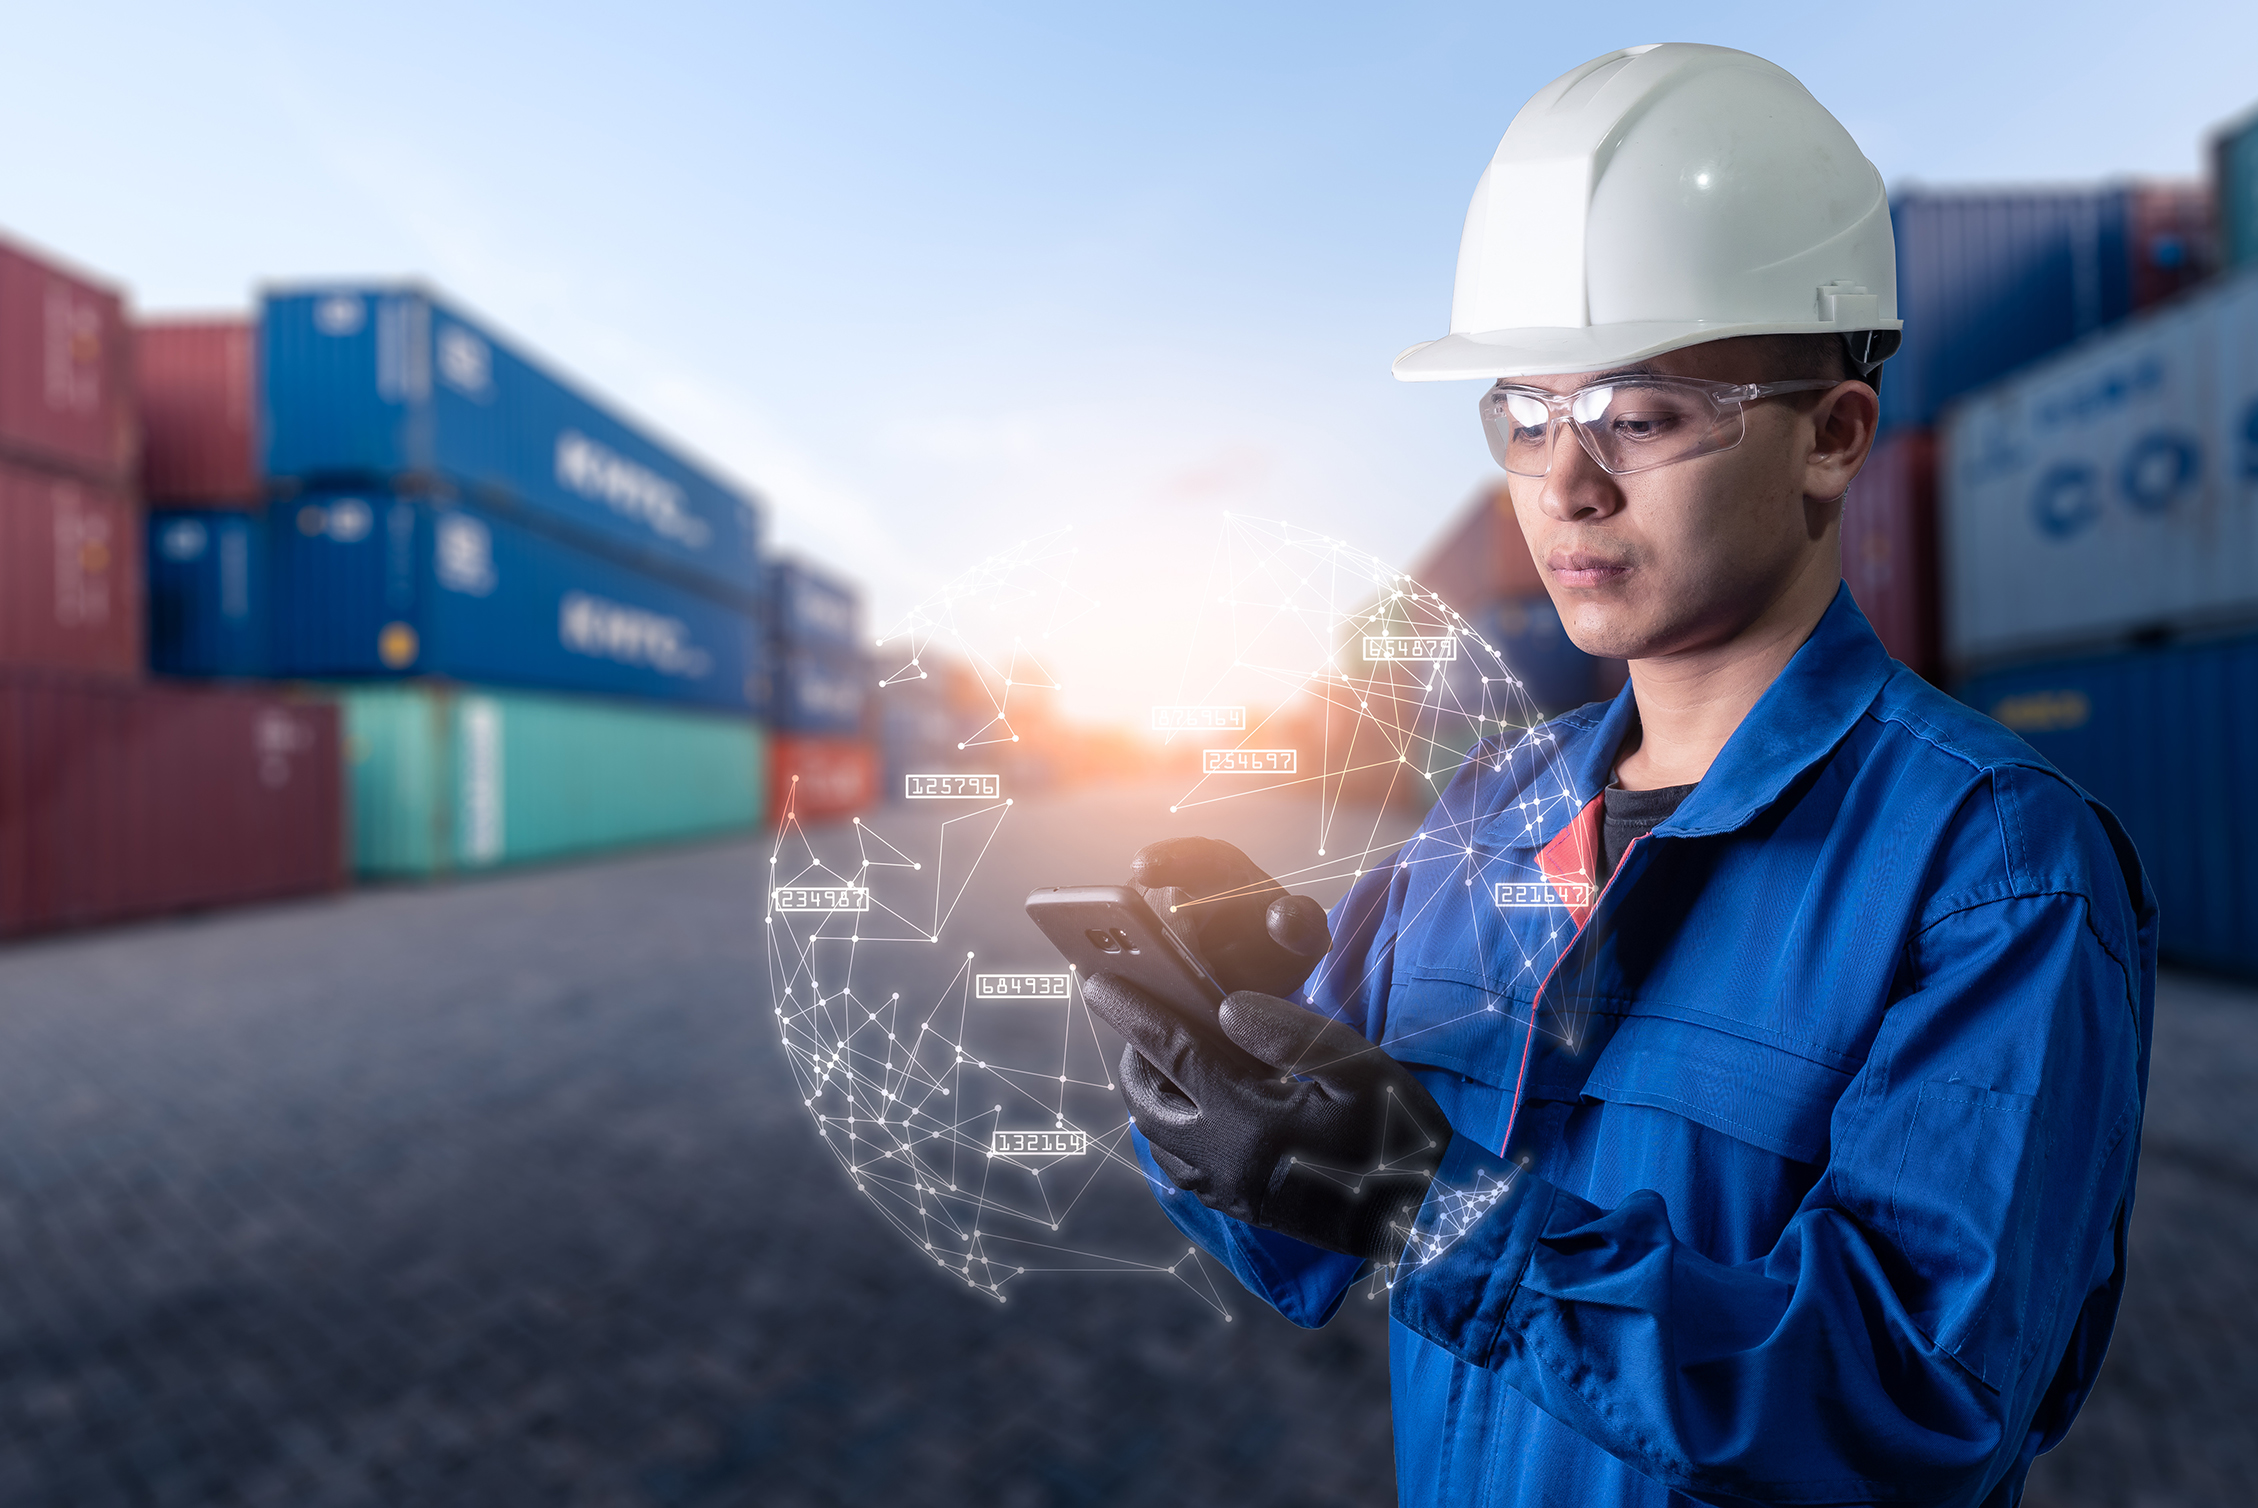 Supply Chains: Visibility and Real-time Analytics Create Resilience